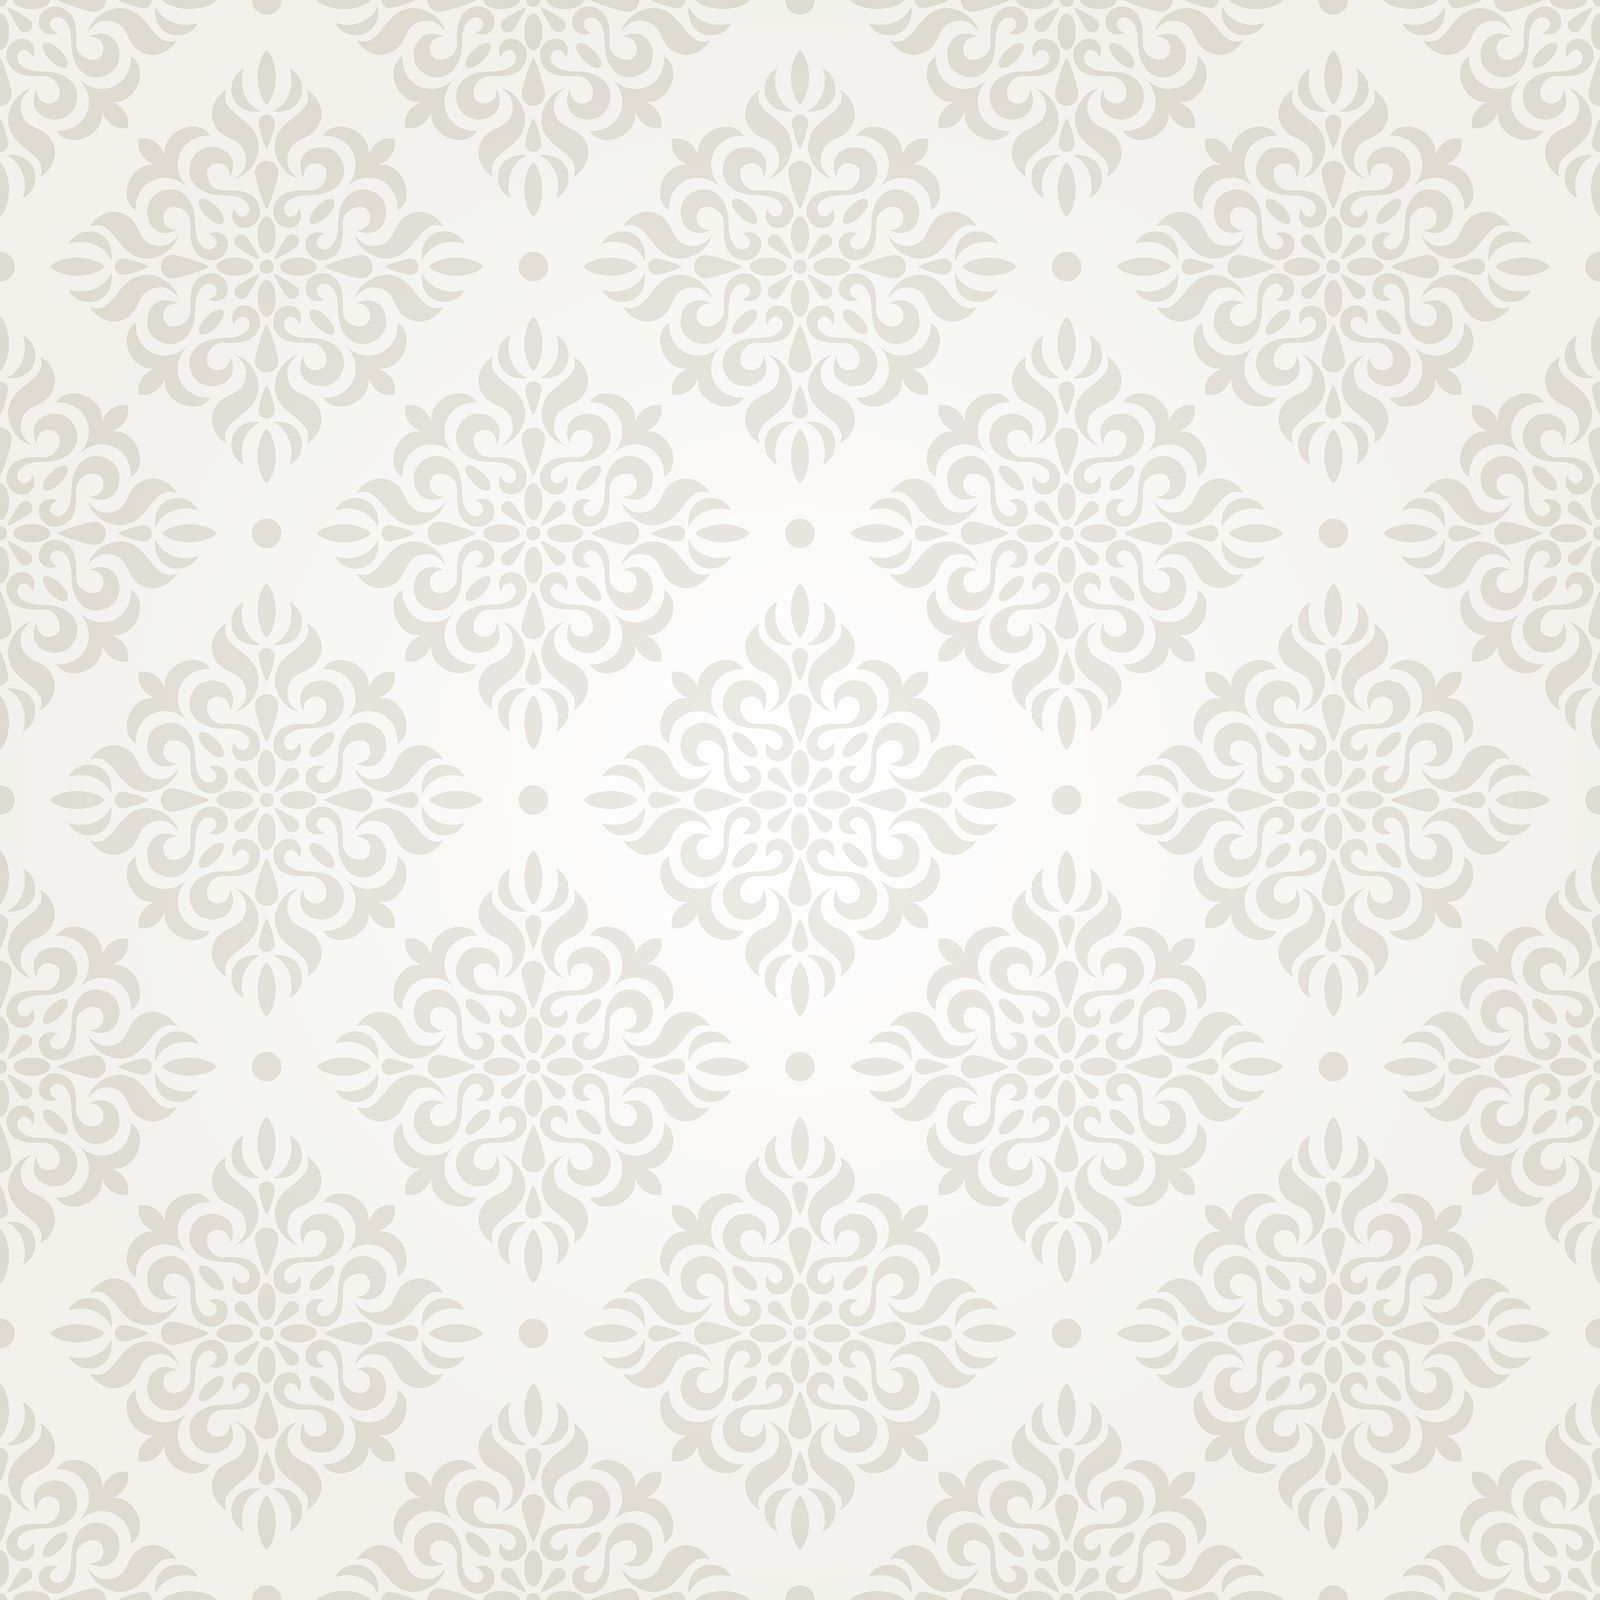 Vintage Wedding Pattern Wallpaper | texture | Pinterest ...